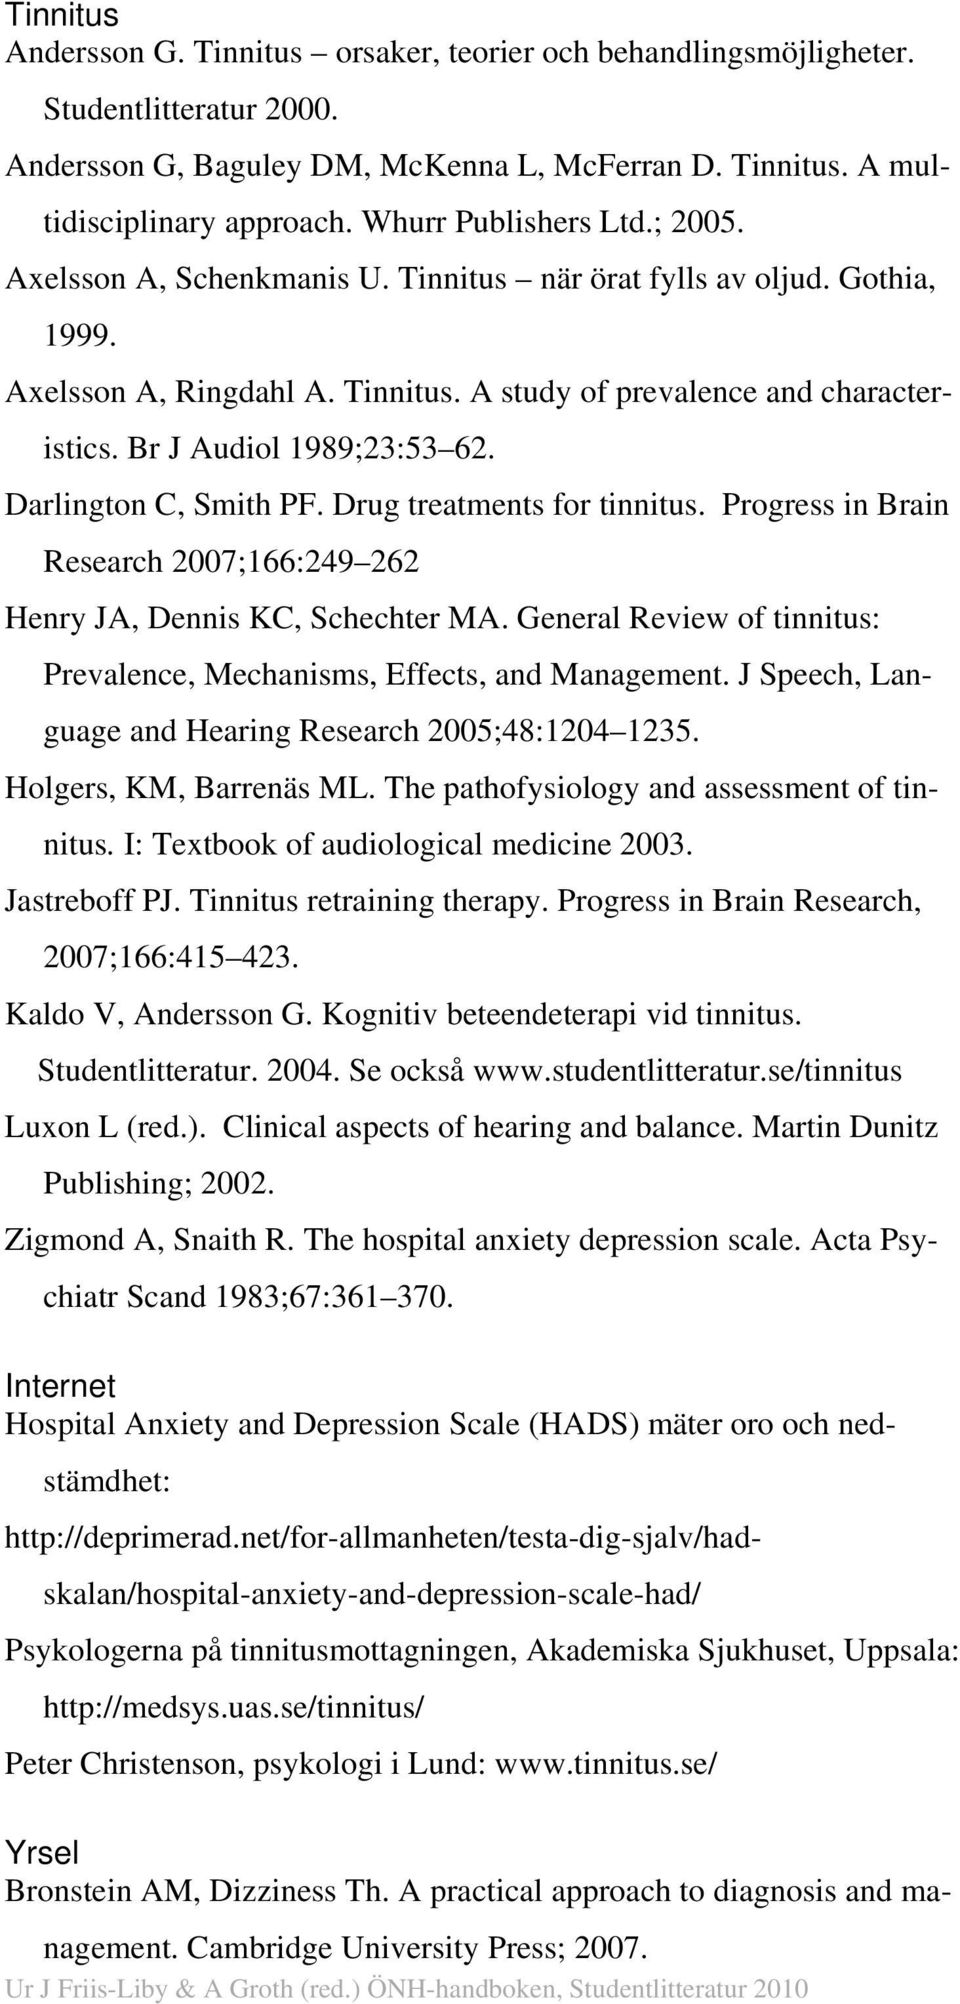 Br J Audiol 1989;23:53 62. Darlington C, Smith PF. Drug treatments for tinnitus. Progress in Brain Research 2007;166:249 262 Henry JA, Dennis KC, Schechter MA.